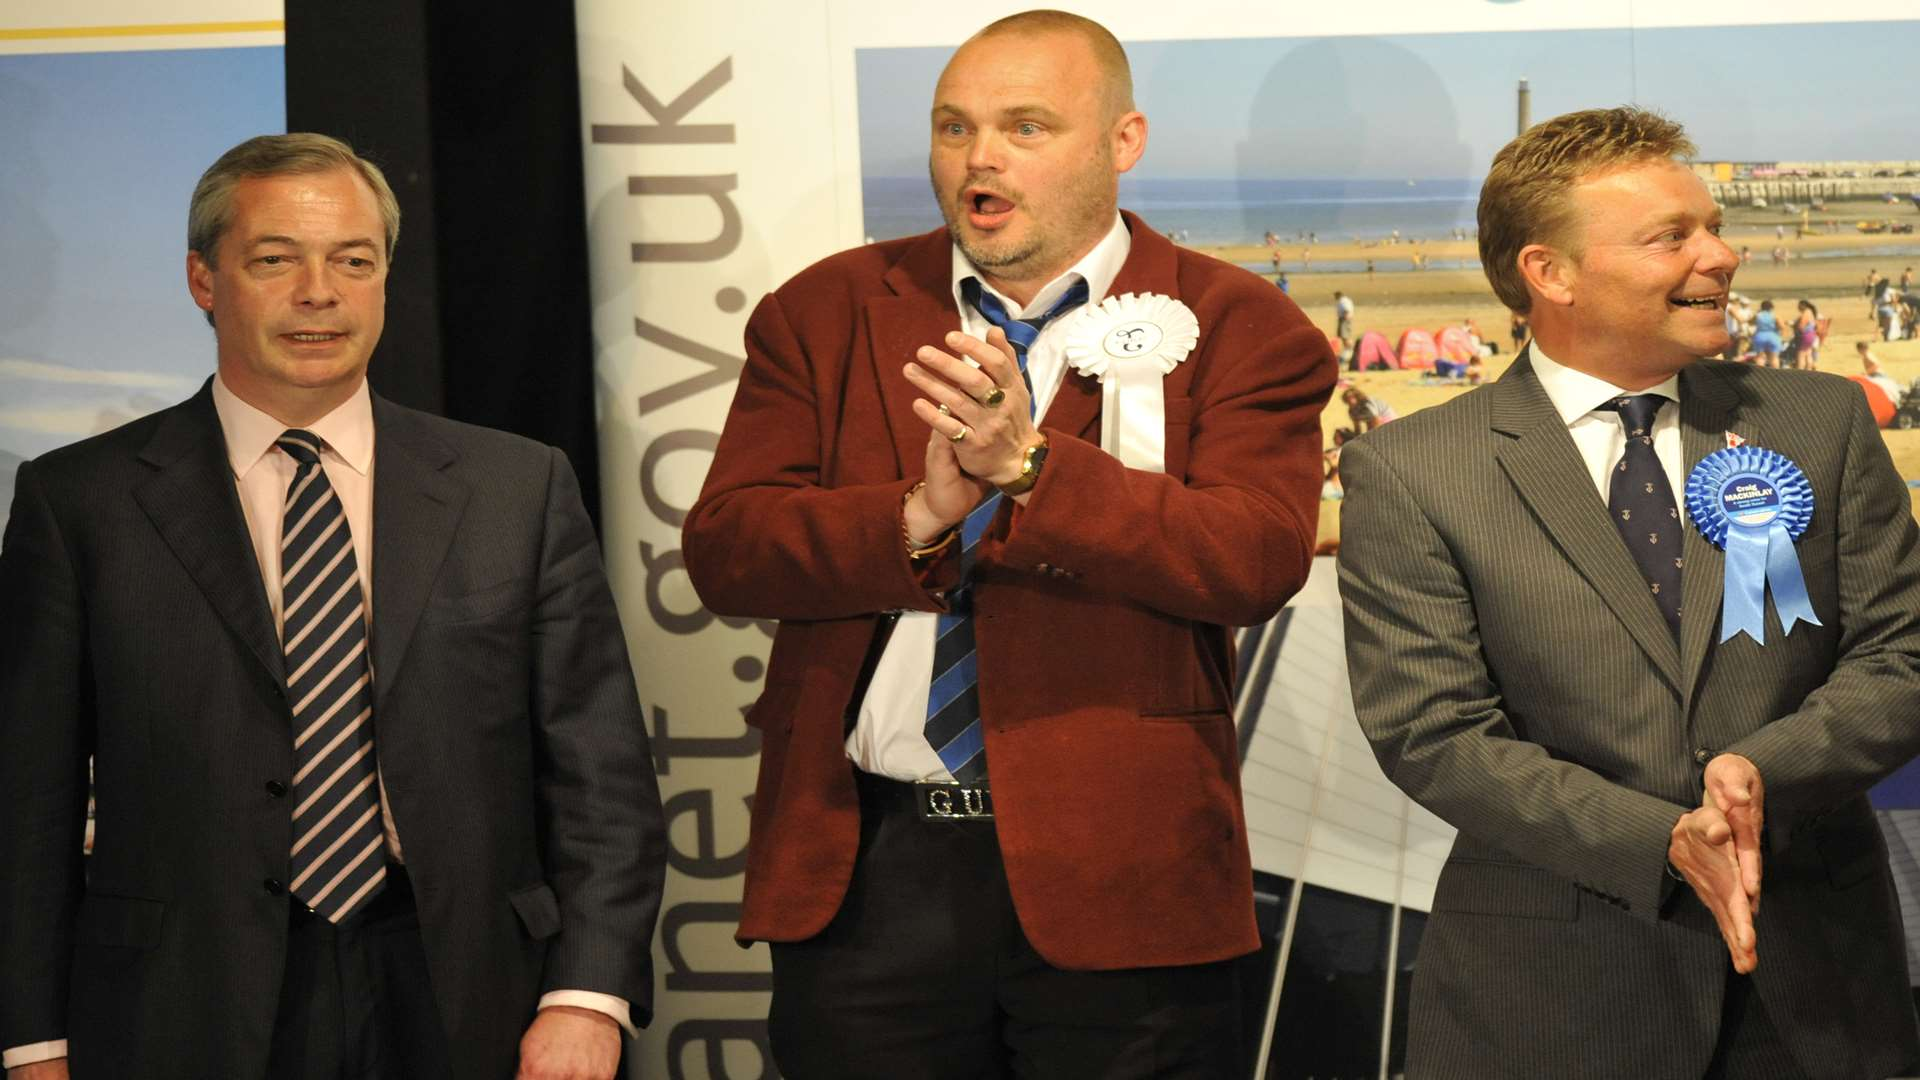 The moment Craig Mackinlay won the South Thanet seat